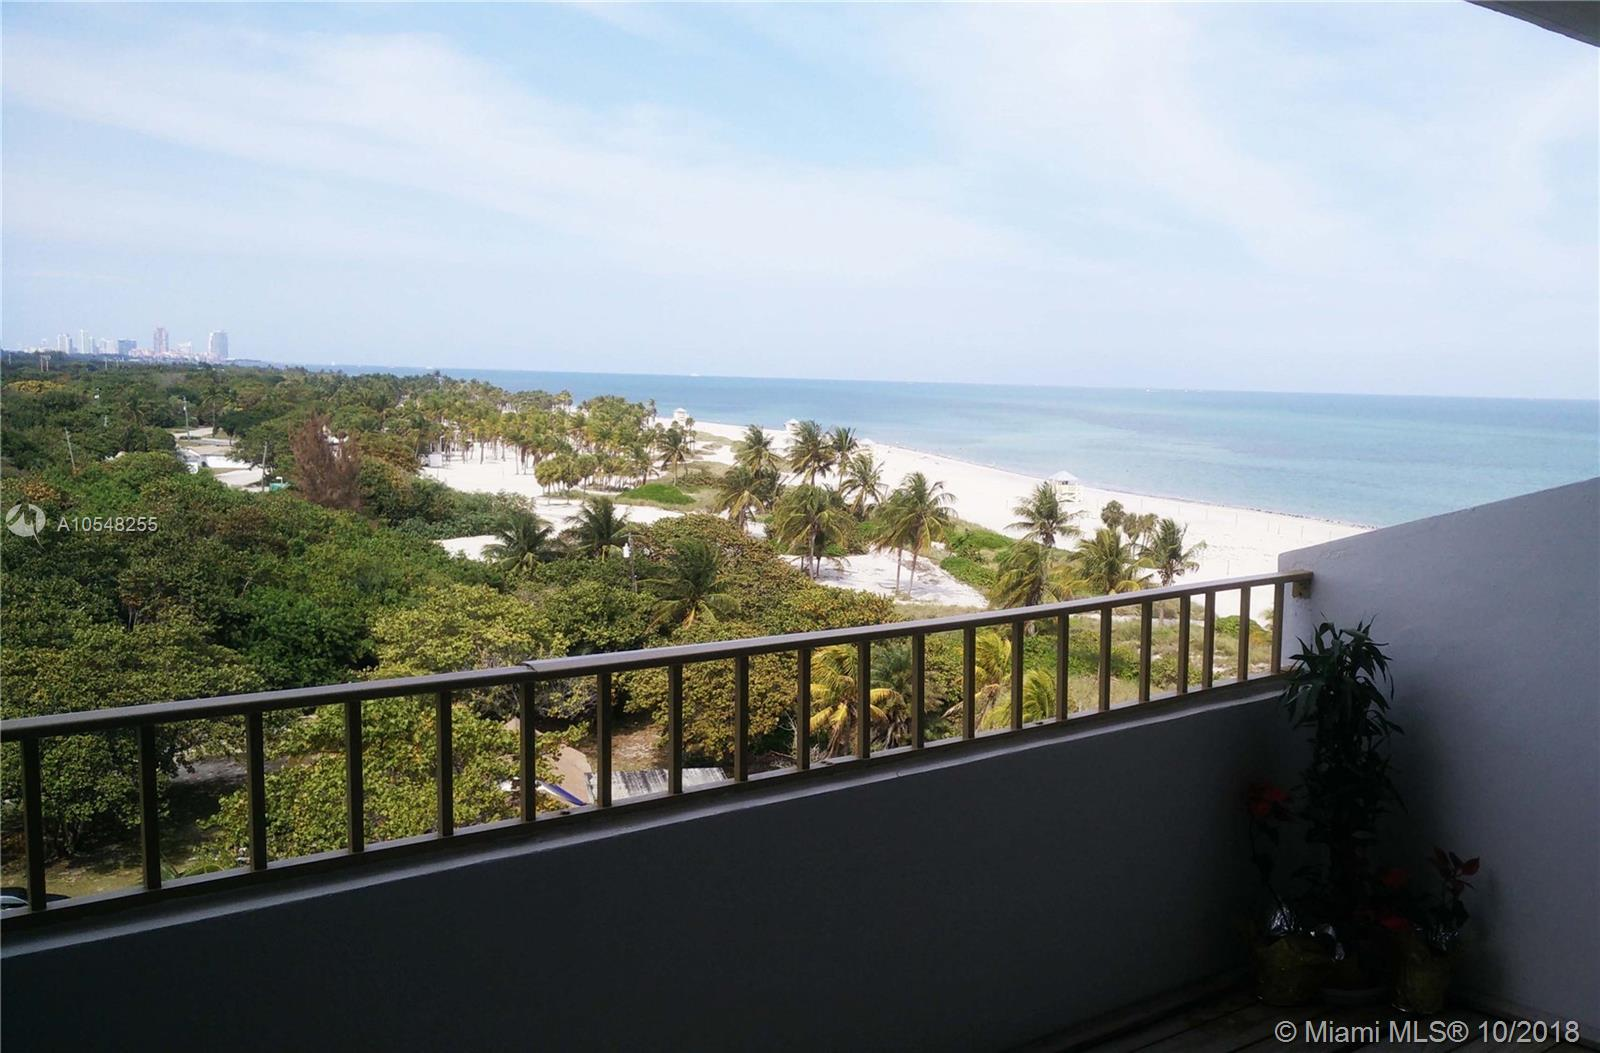 No one will ever take away the unobstructed view of the ocean, Downtown, South Beach and Crandon Park of this apartment! Beautifully updated one bedroom 1.5 bathrooms residence with lots of light, open kitchen, washer and dryer in unit, wood and seagrass floor. Covered assigned parking and direct private beach access. Building amenities include tennis court, gym, sauna and recreation room. Replacement of living room sliding door and bedroom window with impact glasses is in progress and included in asking price: a $ 18K value!Unit is leased; please give 24 h notice minimum for showings.